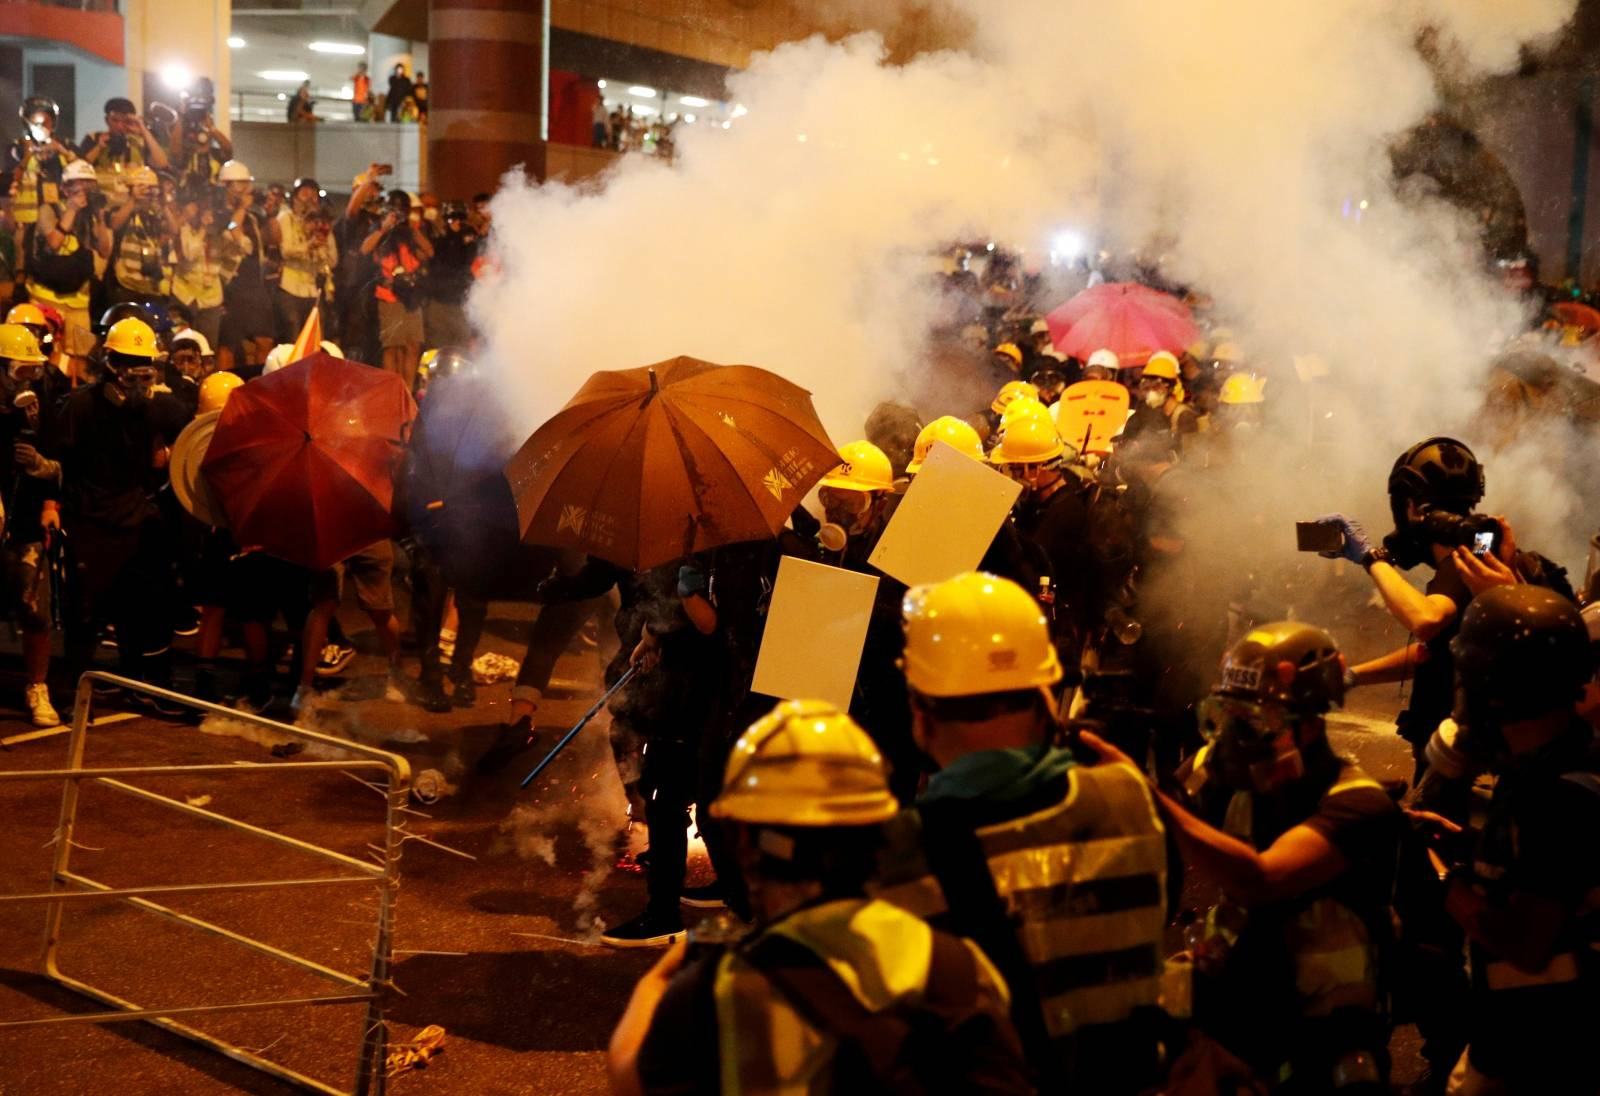 Anti-extradition demonstrators are seen a barricade, after a march to call for democratic reforms in Hong Kong